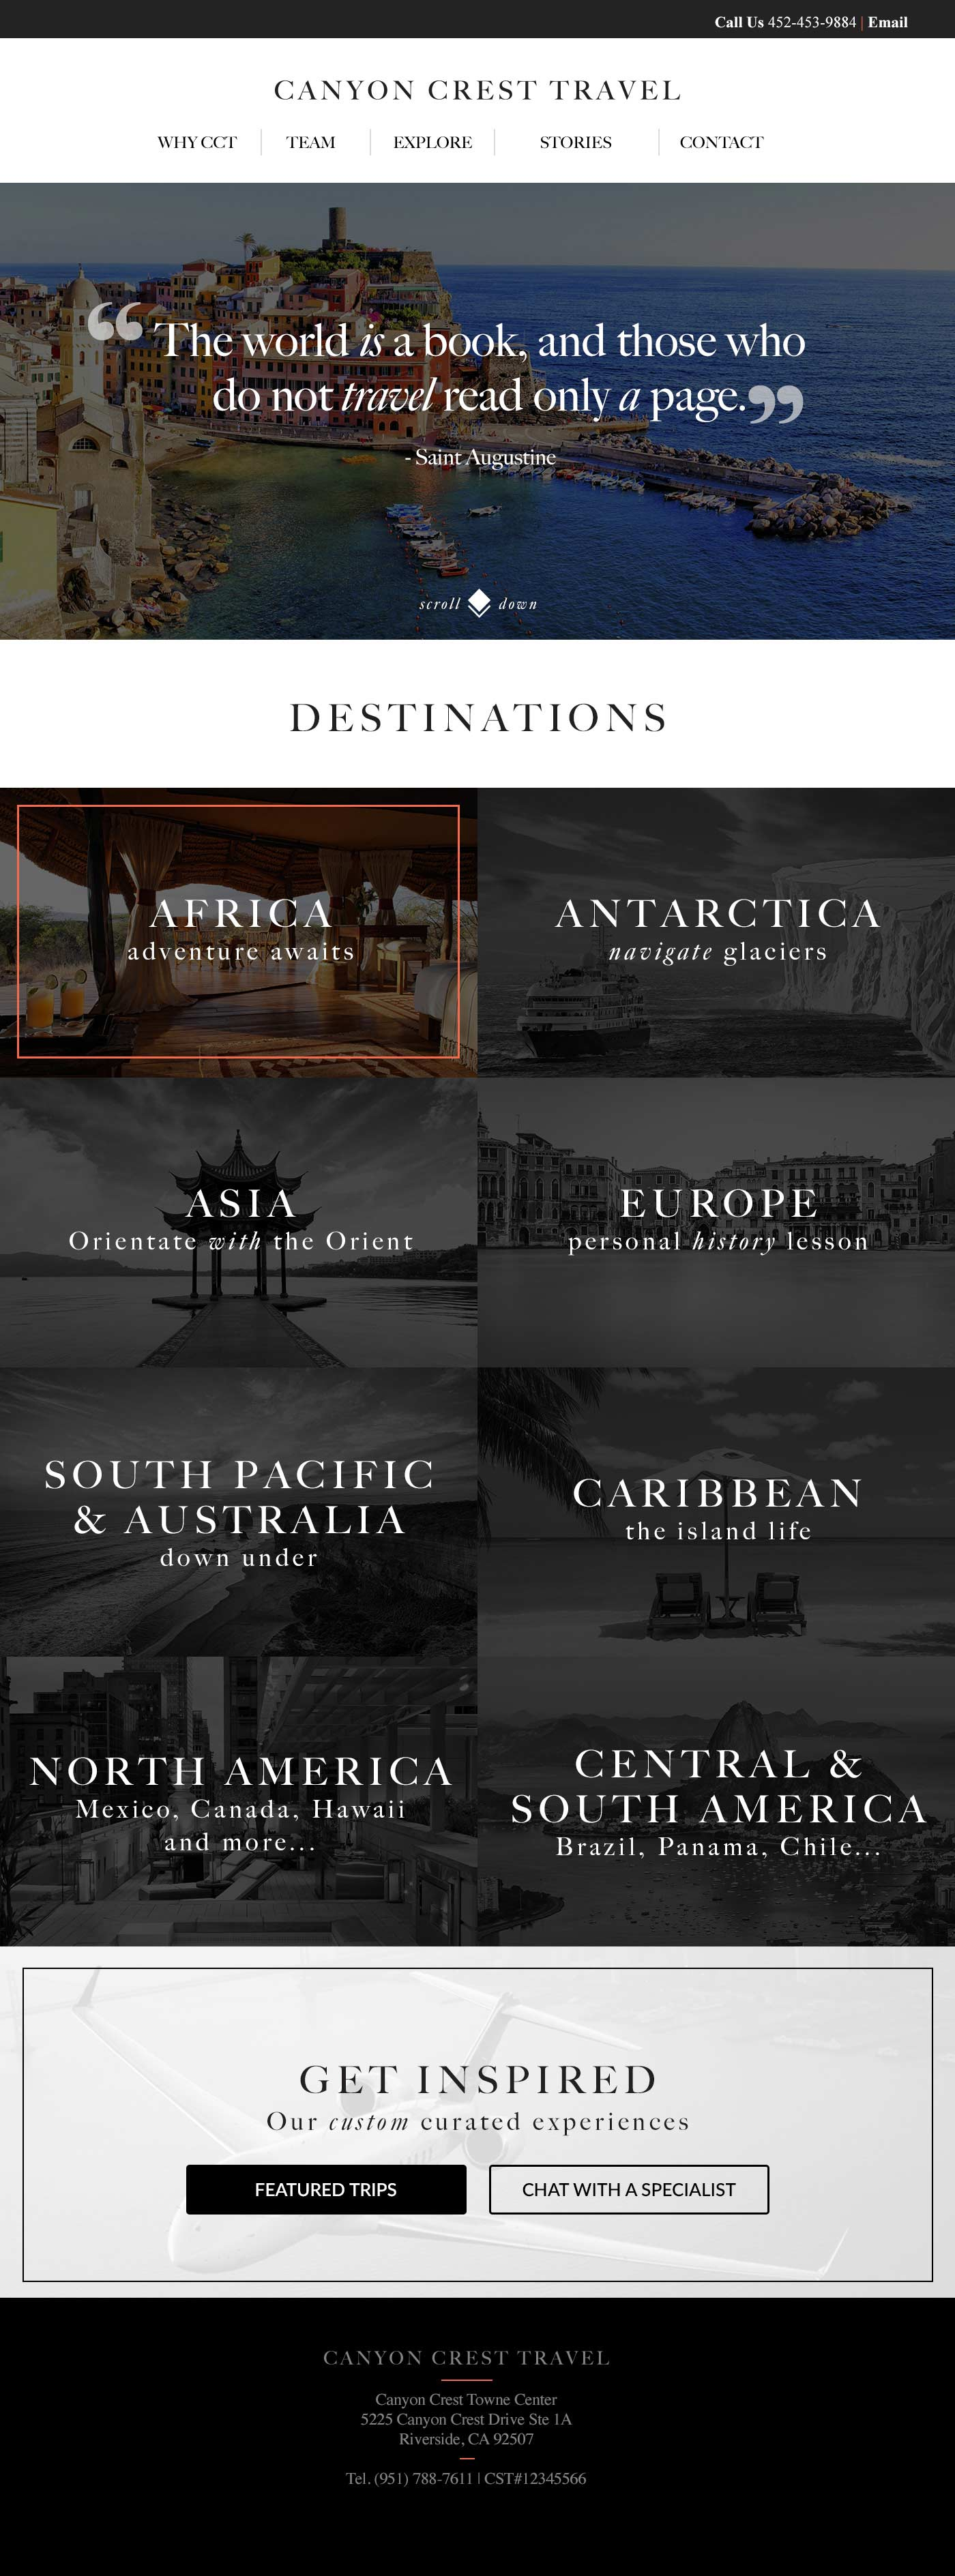 cct_explore-destinations